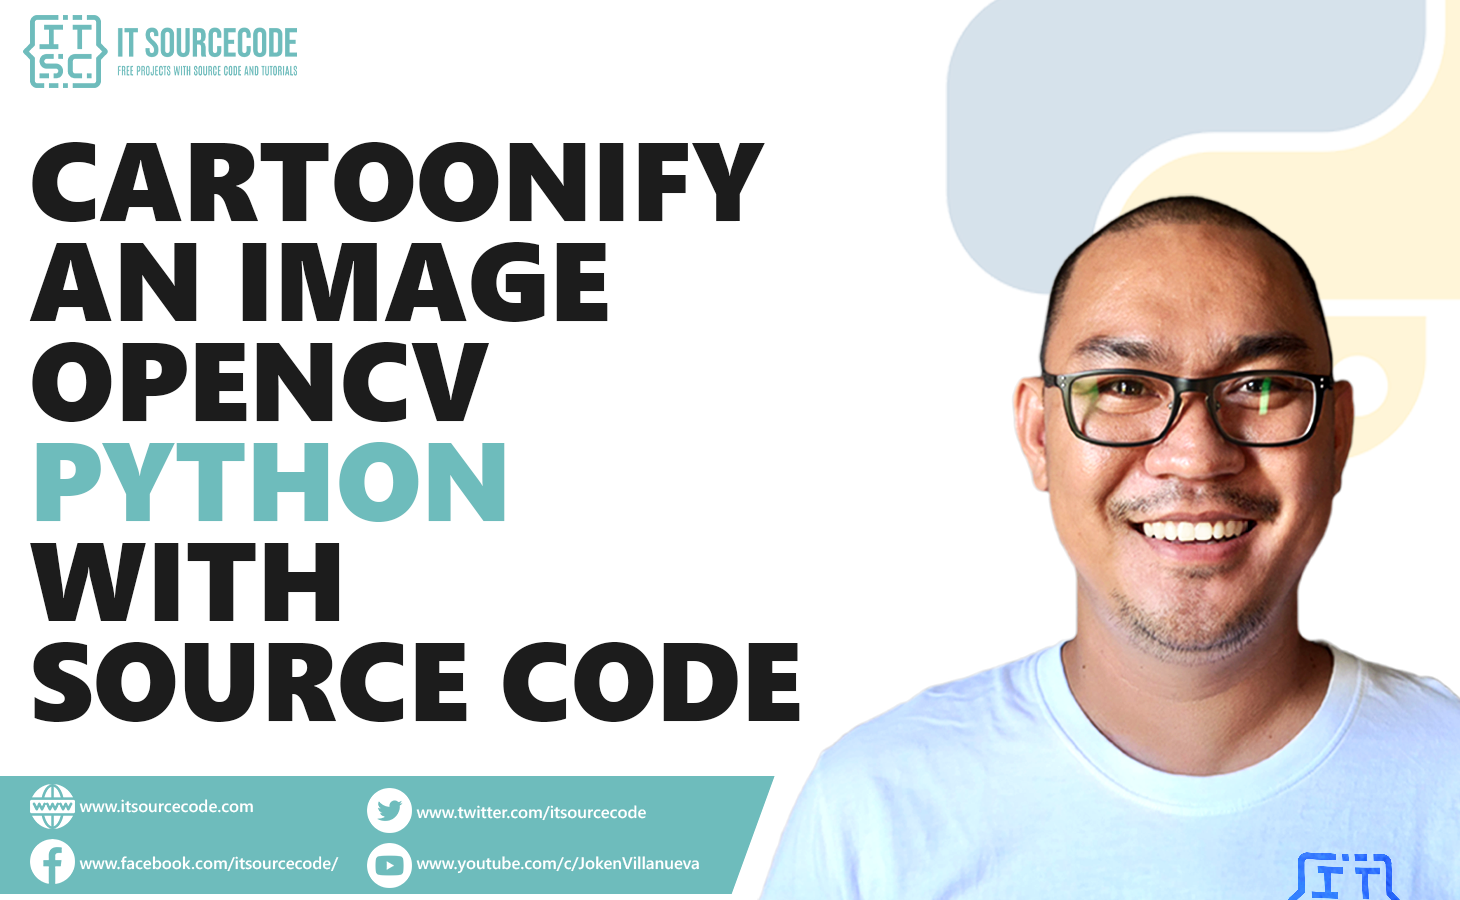 Cartoonify an Image OpenCV Python With Source Code